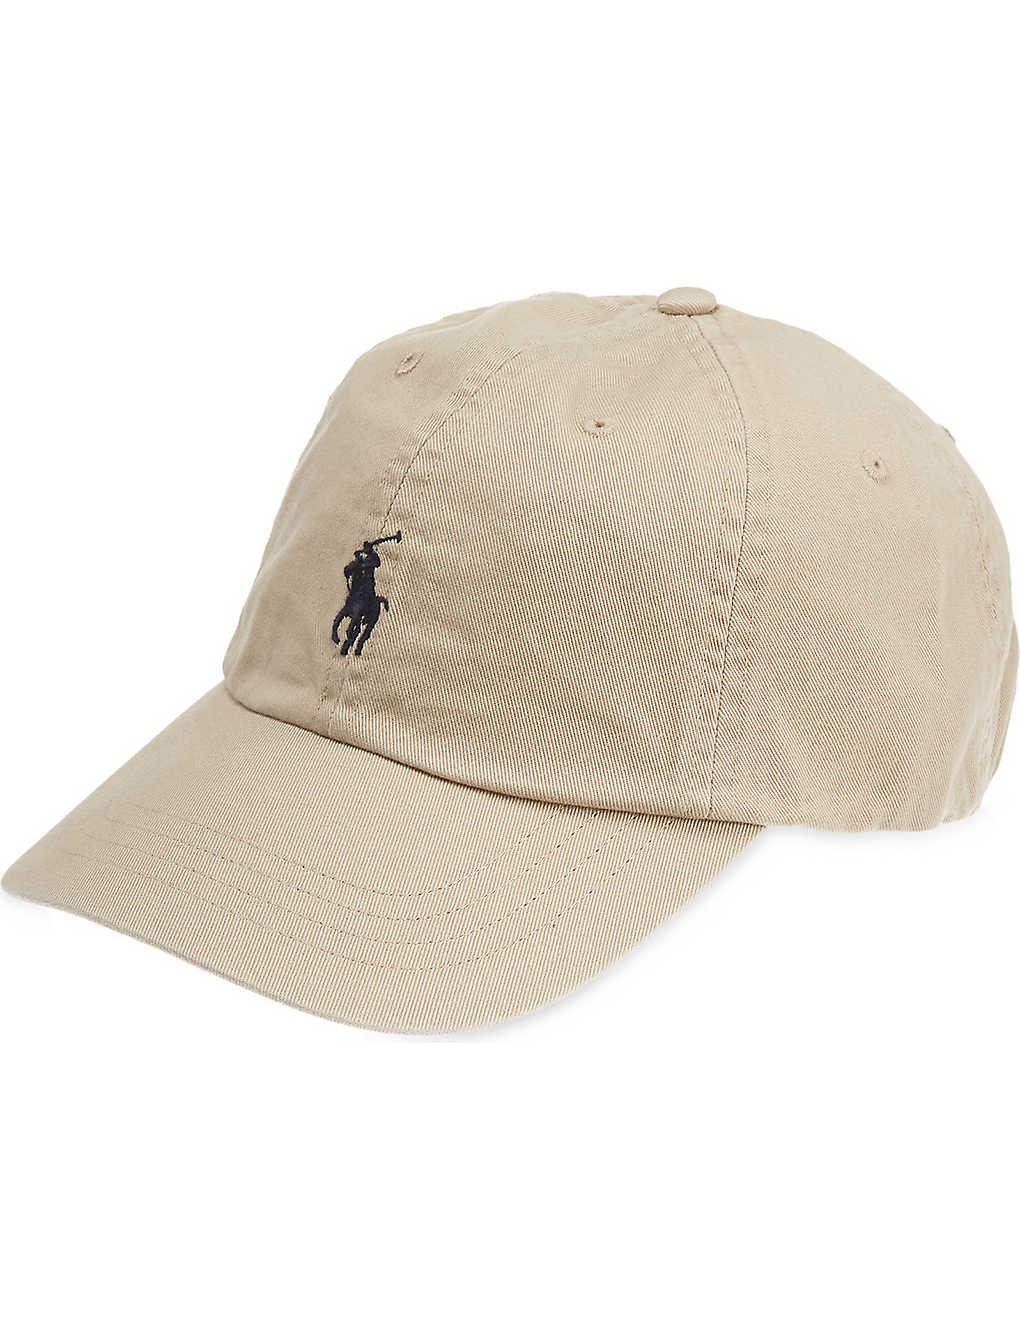 046ee9ec0 POLO RALPH LAUREN Classic Pony baseball cap. £35.00. The quantity chosen is  not available